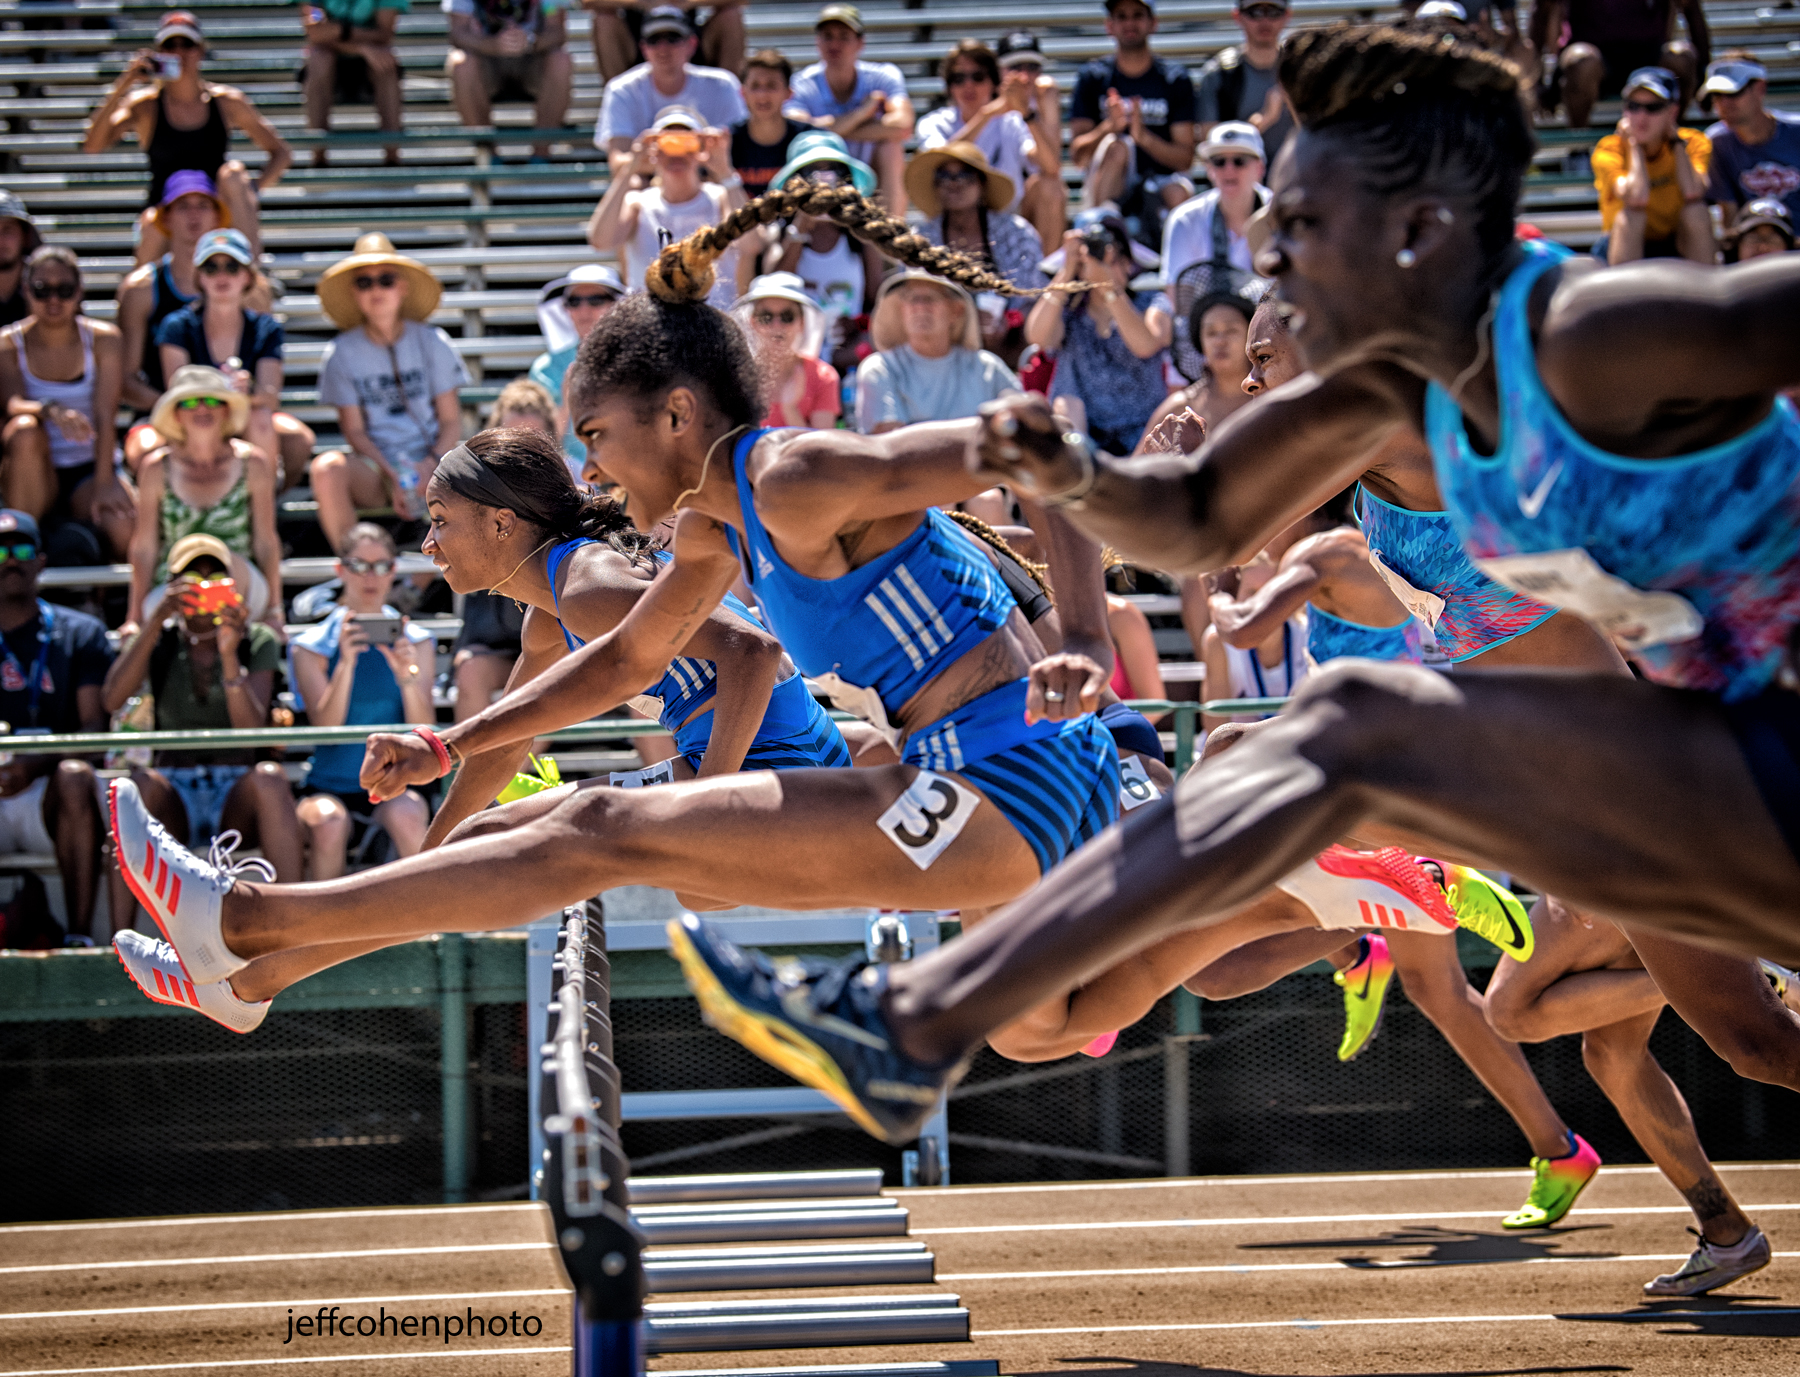 2017-usatf-outdoor-champs-day-3-100mhw--jeff-cohen-photo--4645-web.jpg